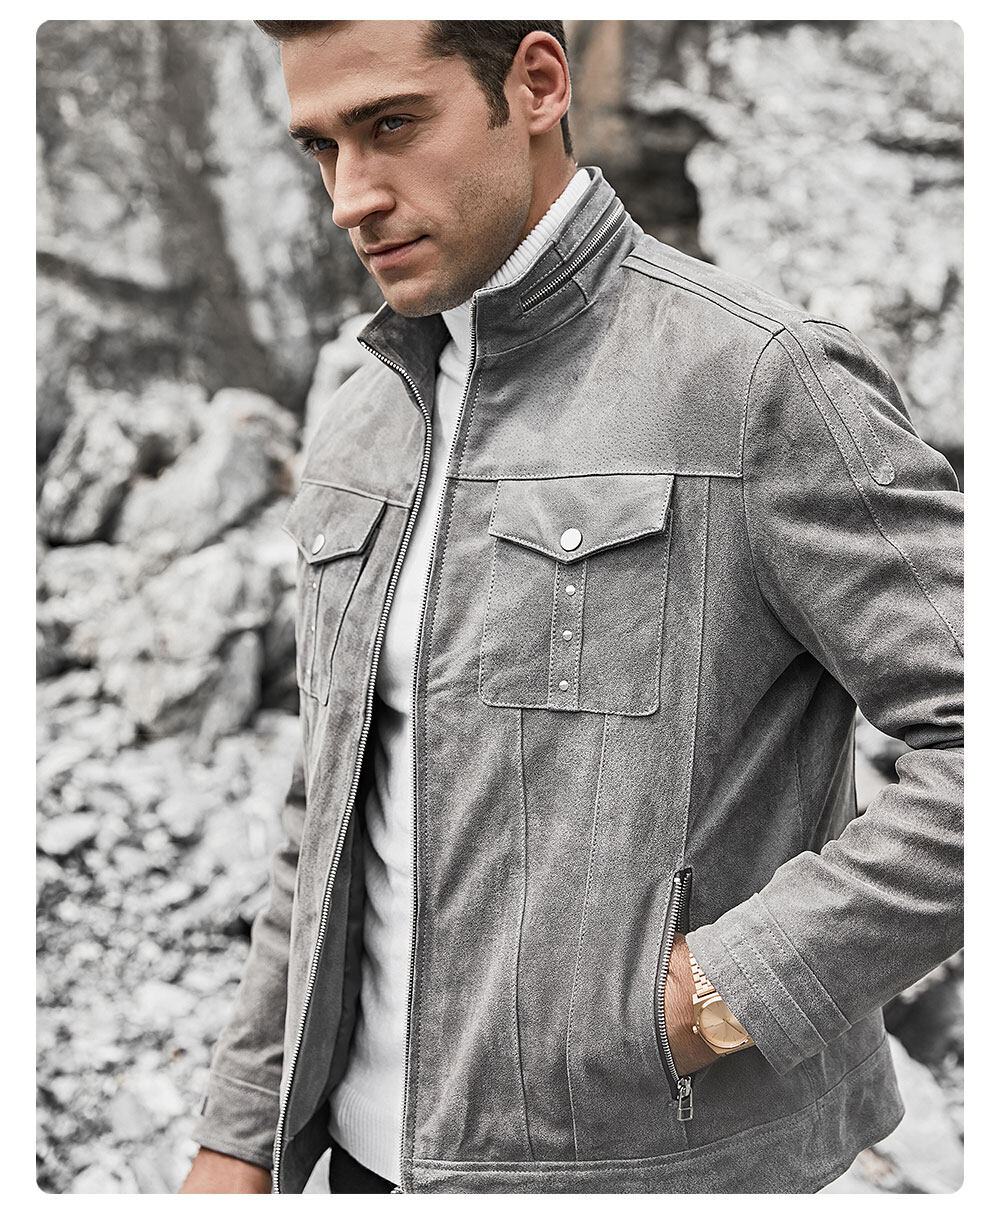 Men's Gray Leather Jacket Stand CollarBuy subtly worn genuine stand collar jackets| discount subtly worn genuine stand collar jackets